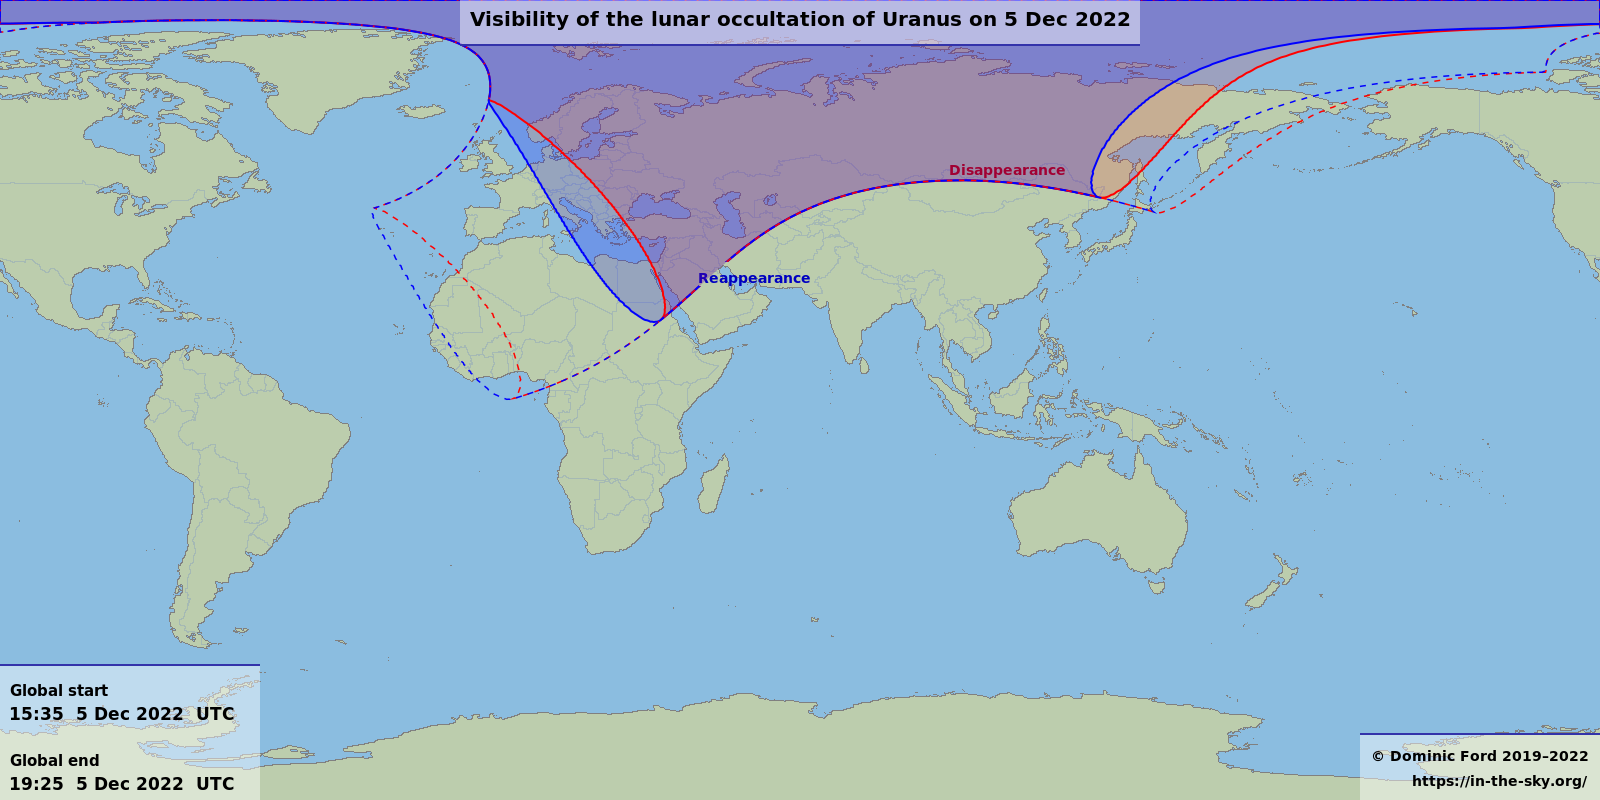 Map showing where the occultation is visible